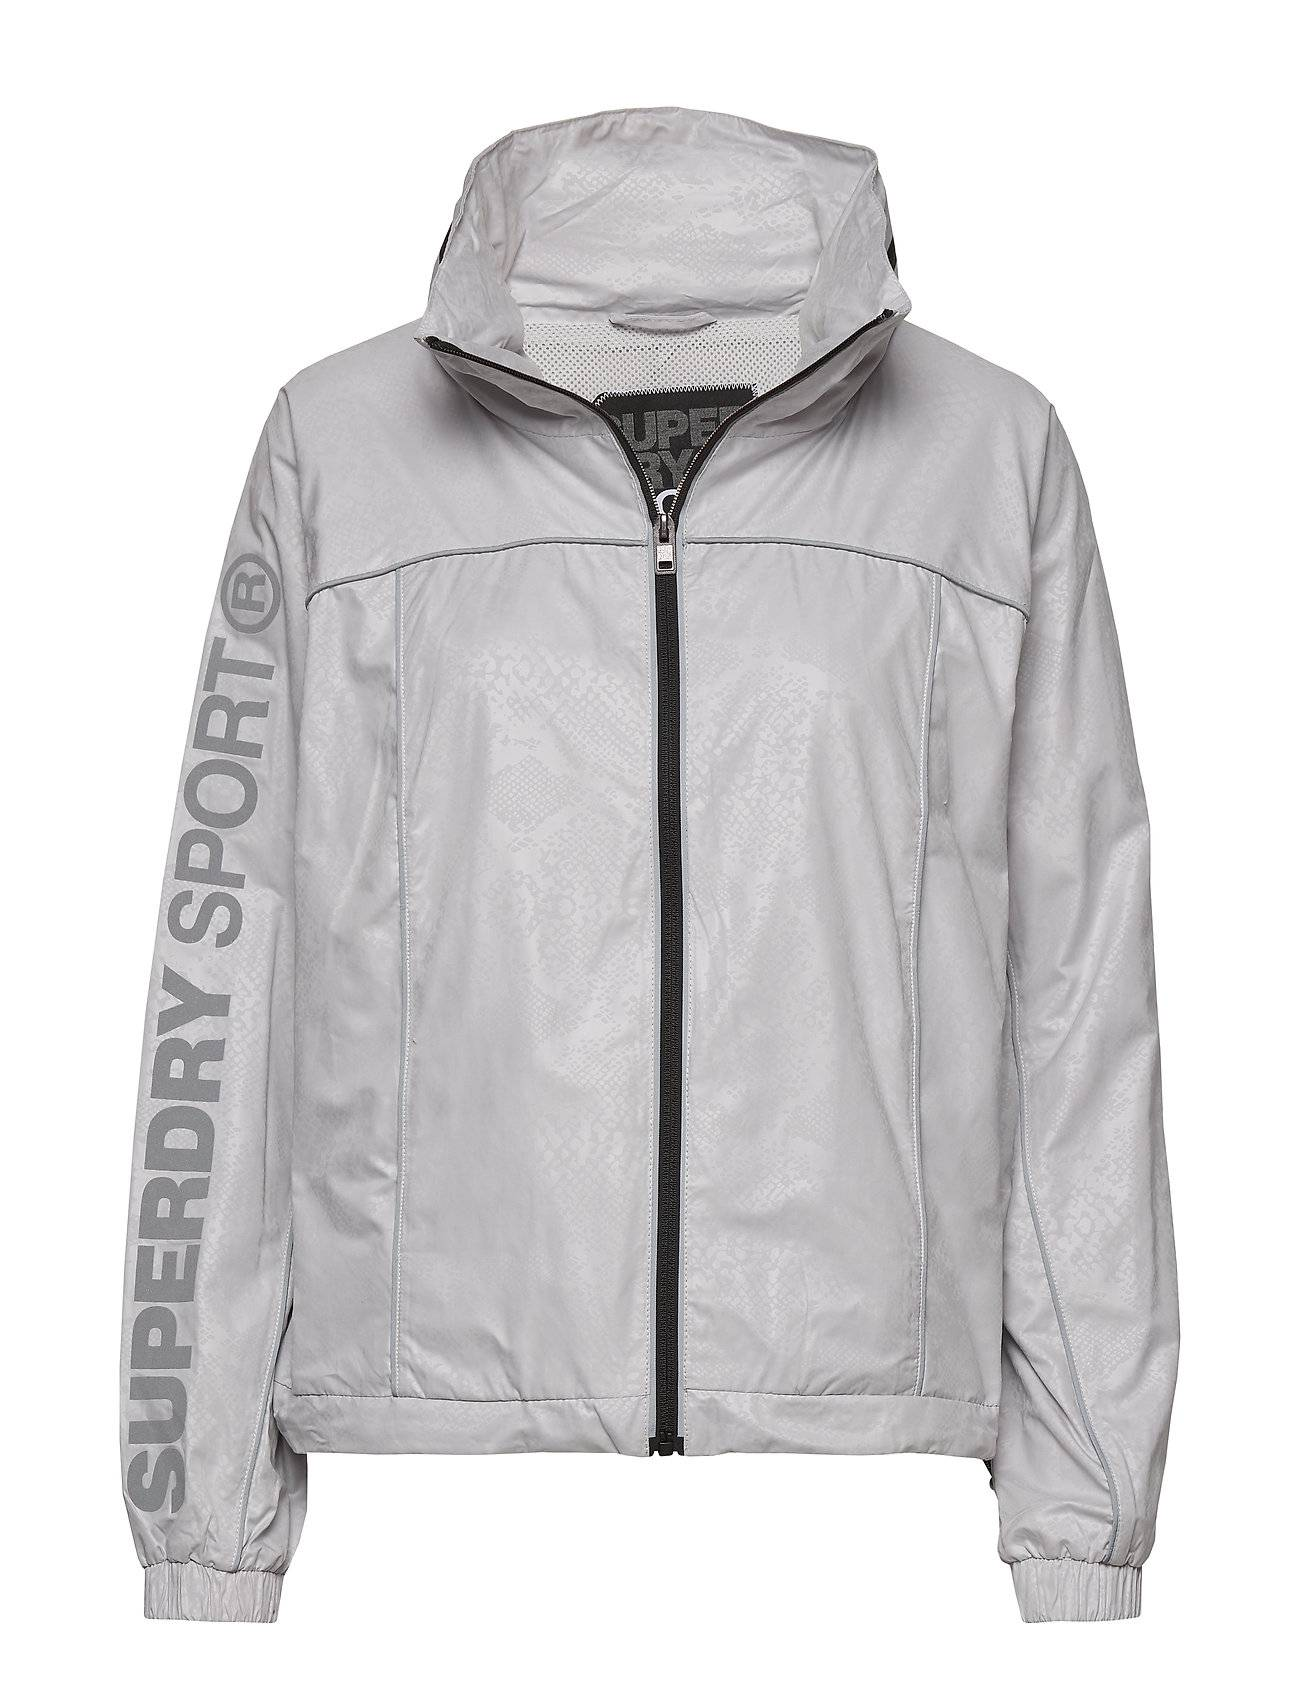 Superdry Gym Running Jacket Outerwear Sport Jackets Harmaa Superdry